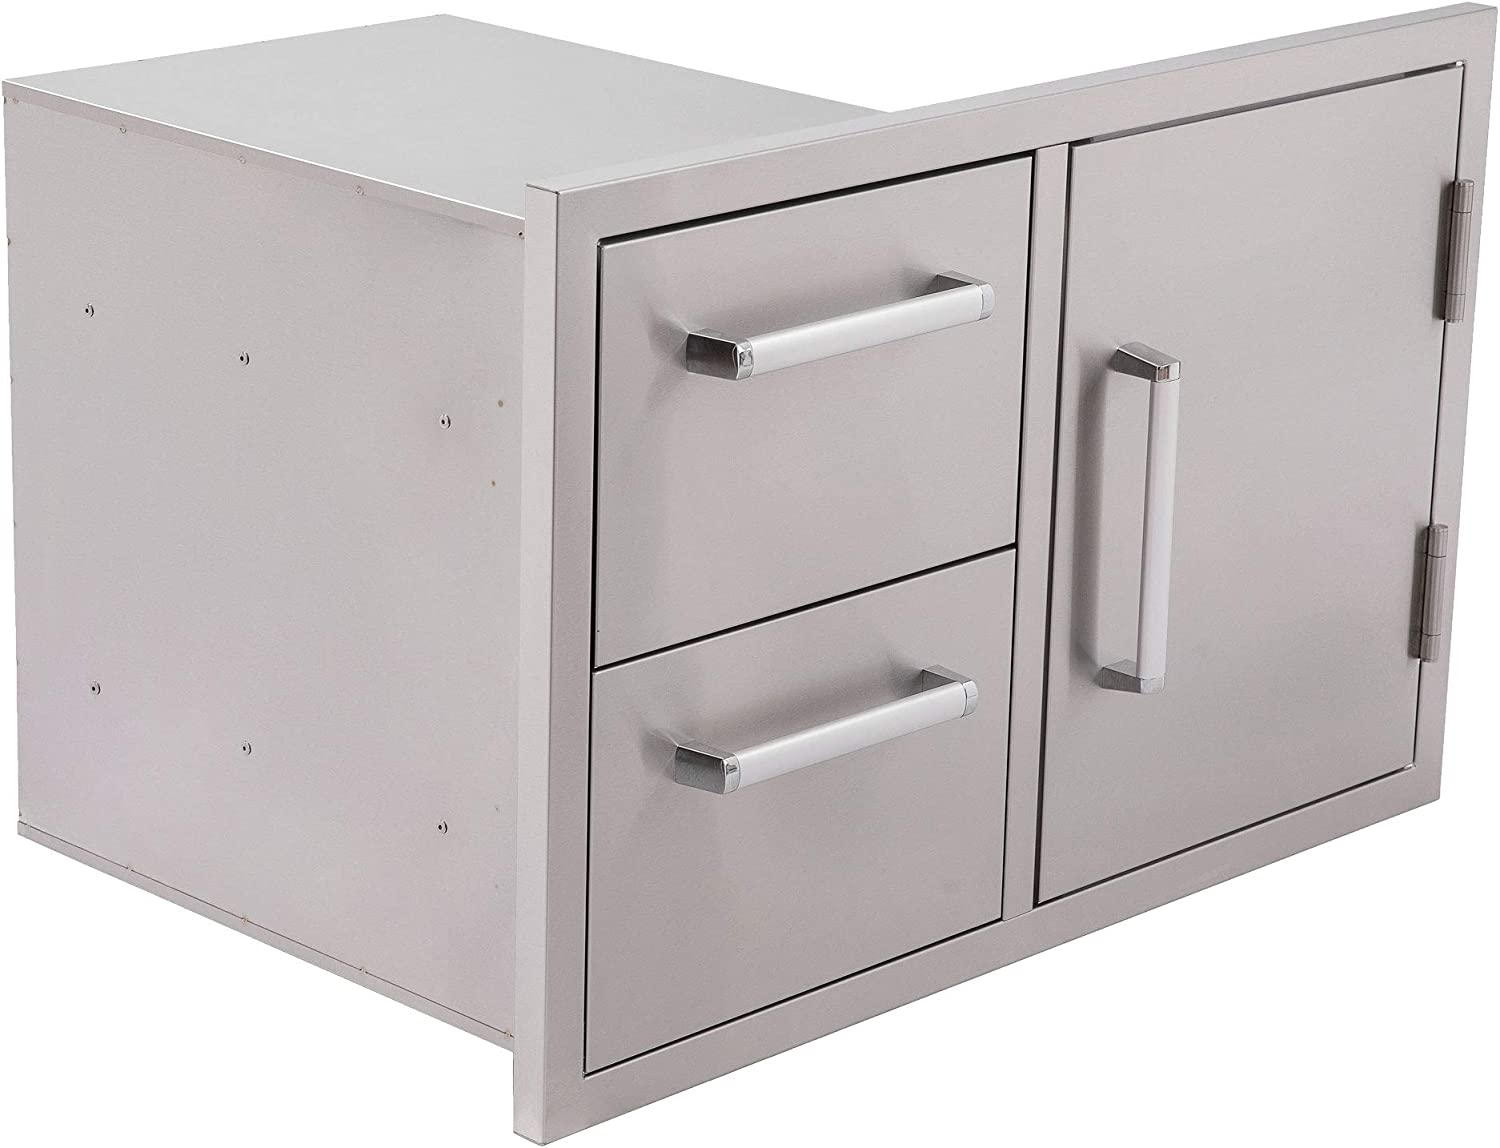 Bonfire San Antonio Mall Outdoor Kitchen Super special price Drawers and Door BBQ Access Drawe Double